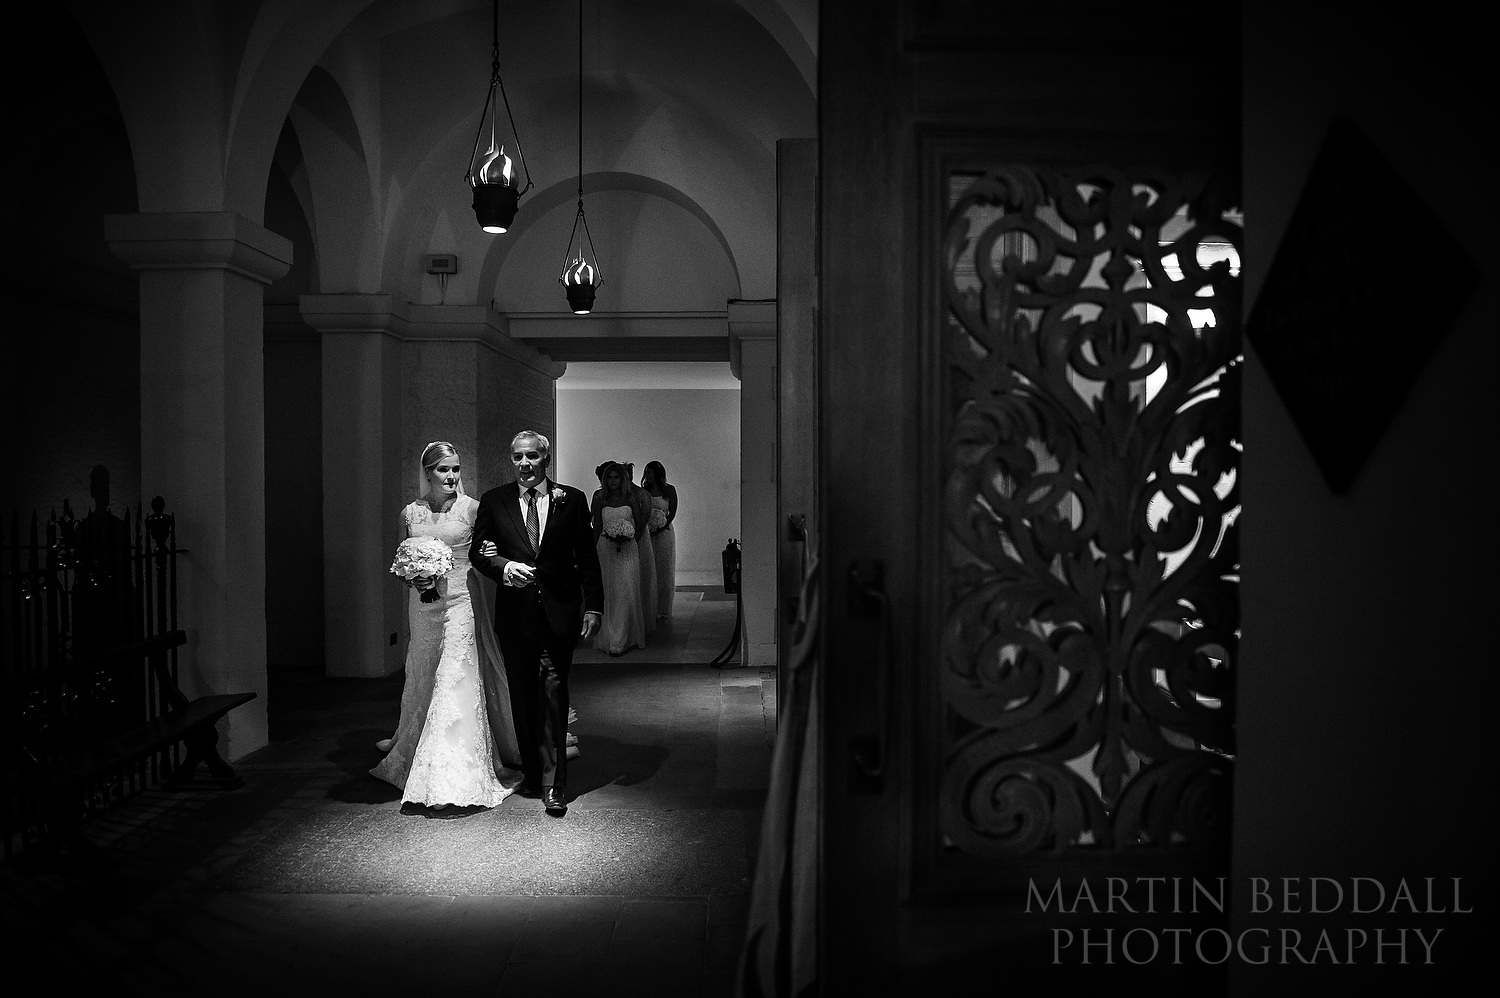 Bride escorted by her father to the OBE Chapel